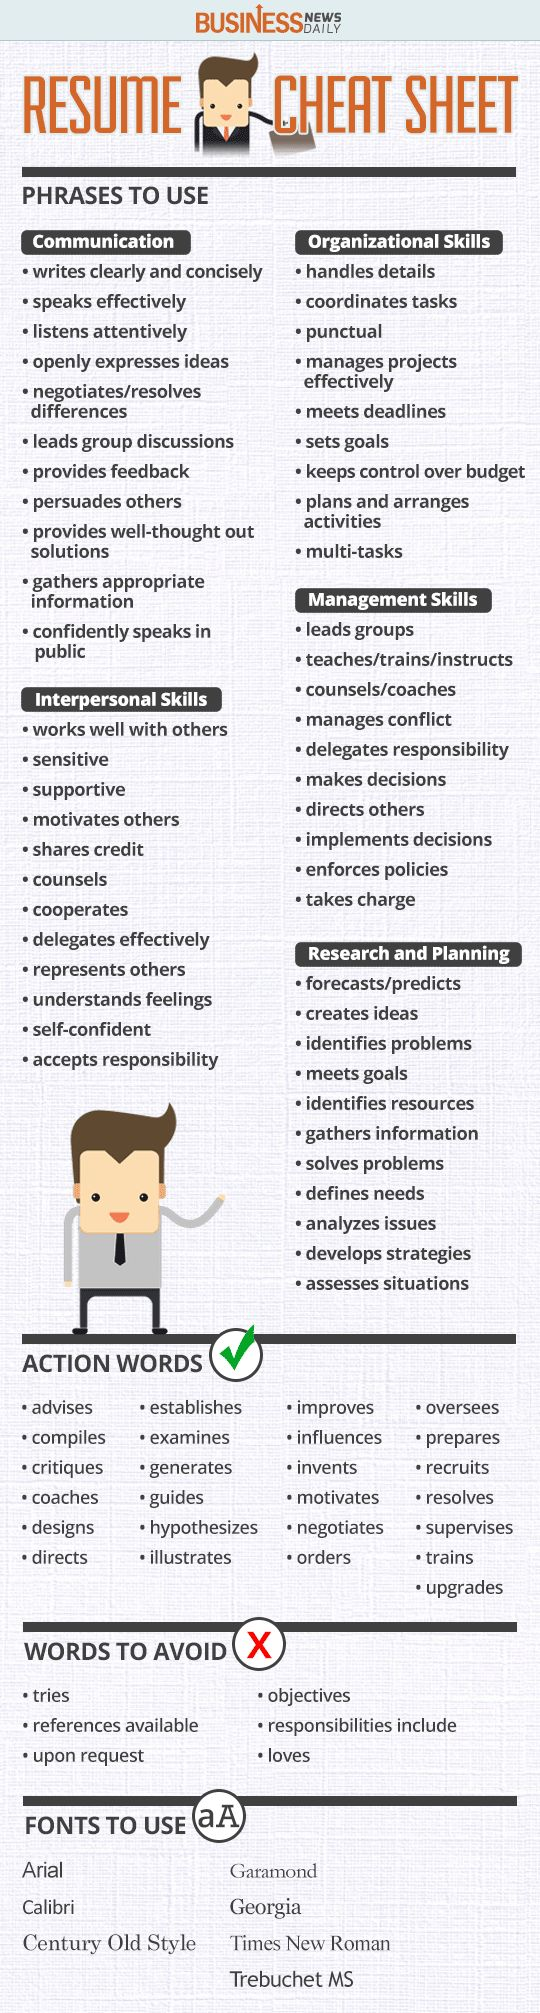 Opposenewapstandardsus  Winning  Ideas About Resume On Pinterest  Cv Format Resume Cv And  With Great Resume Cheat Sheet Infographic Andrews Almost Done With A Complete Unit On Employment Which With Alluring Good Resume Titles Also Receptionist Resume Examples In Addition Salesman Resume And Effective Resumes As Well As Technical Resume Examples Additionally Peace Corps Resume From Pinterestcom With Opposenewapstandardsus  Great  Ideas About Resume On Pinterest  Cv Format Resume Cv And  With Alluring Resume Cheat Sheet Infographic Andrews Almost Done With A Complete Unit On Employment Which And Winning Good Resume Titles Also Receptionist Resume Examples In Addition Salesman Resume From Pinterestcom